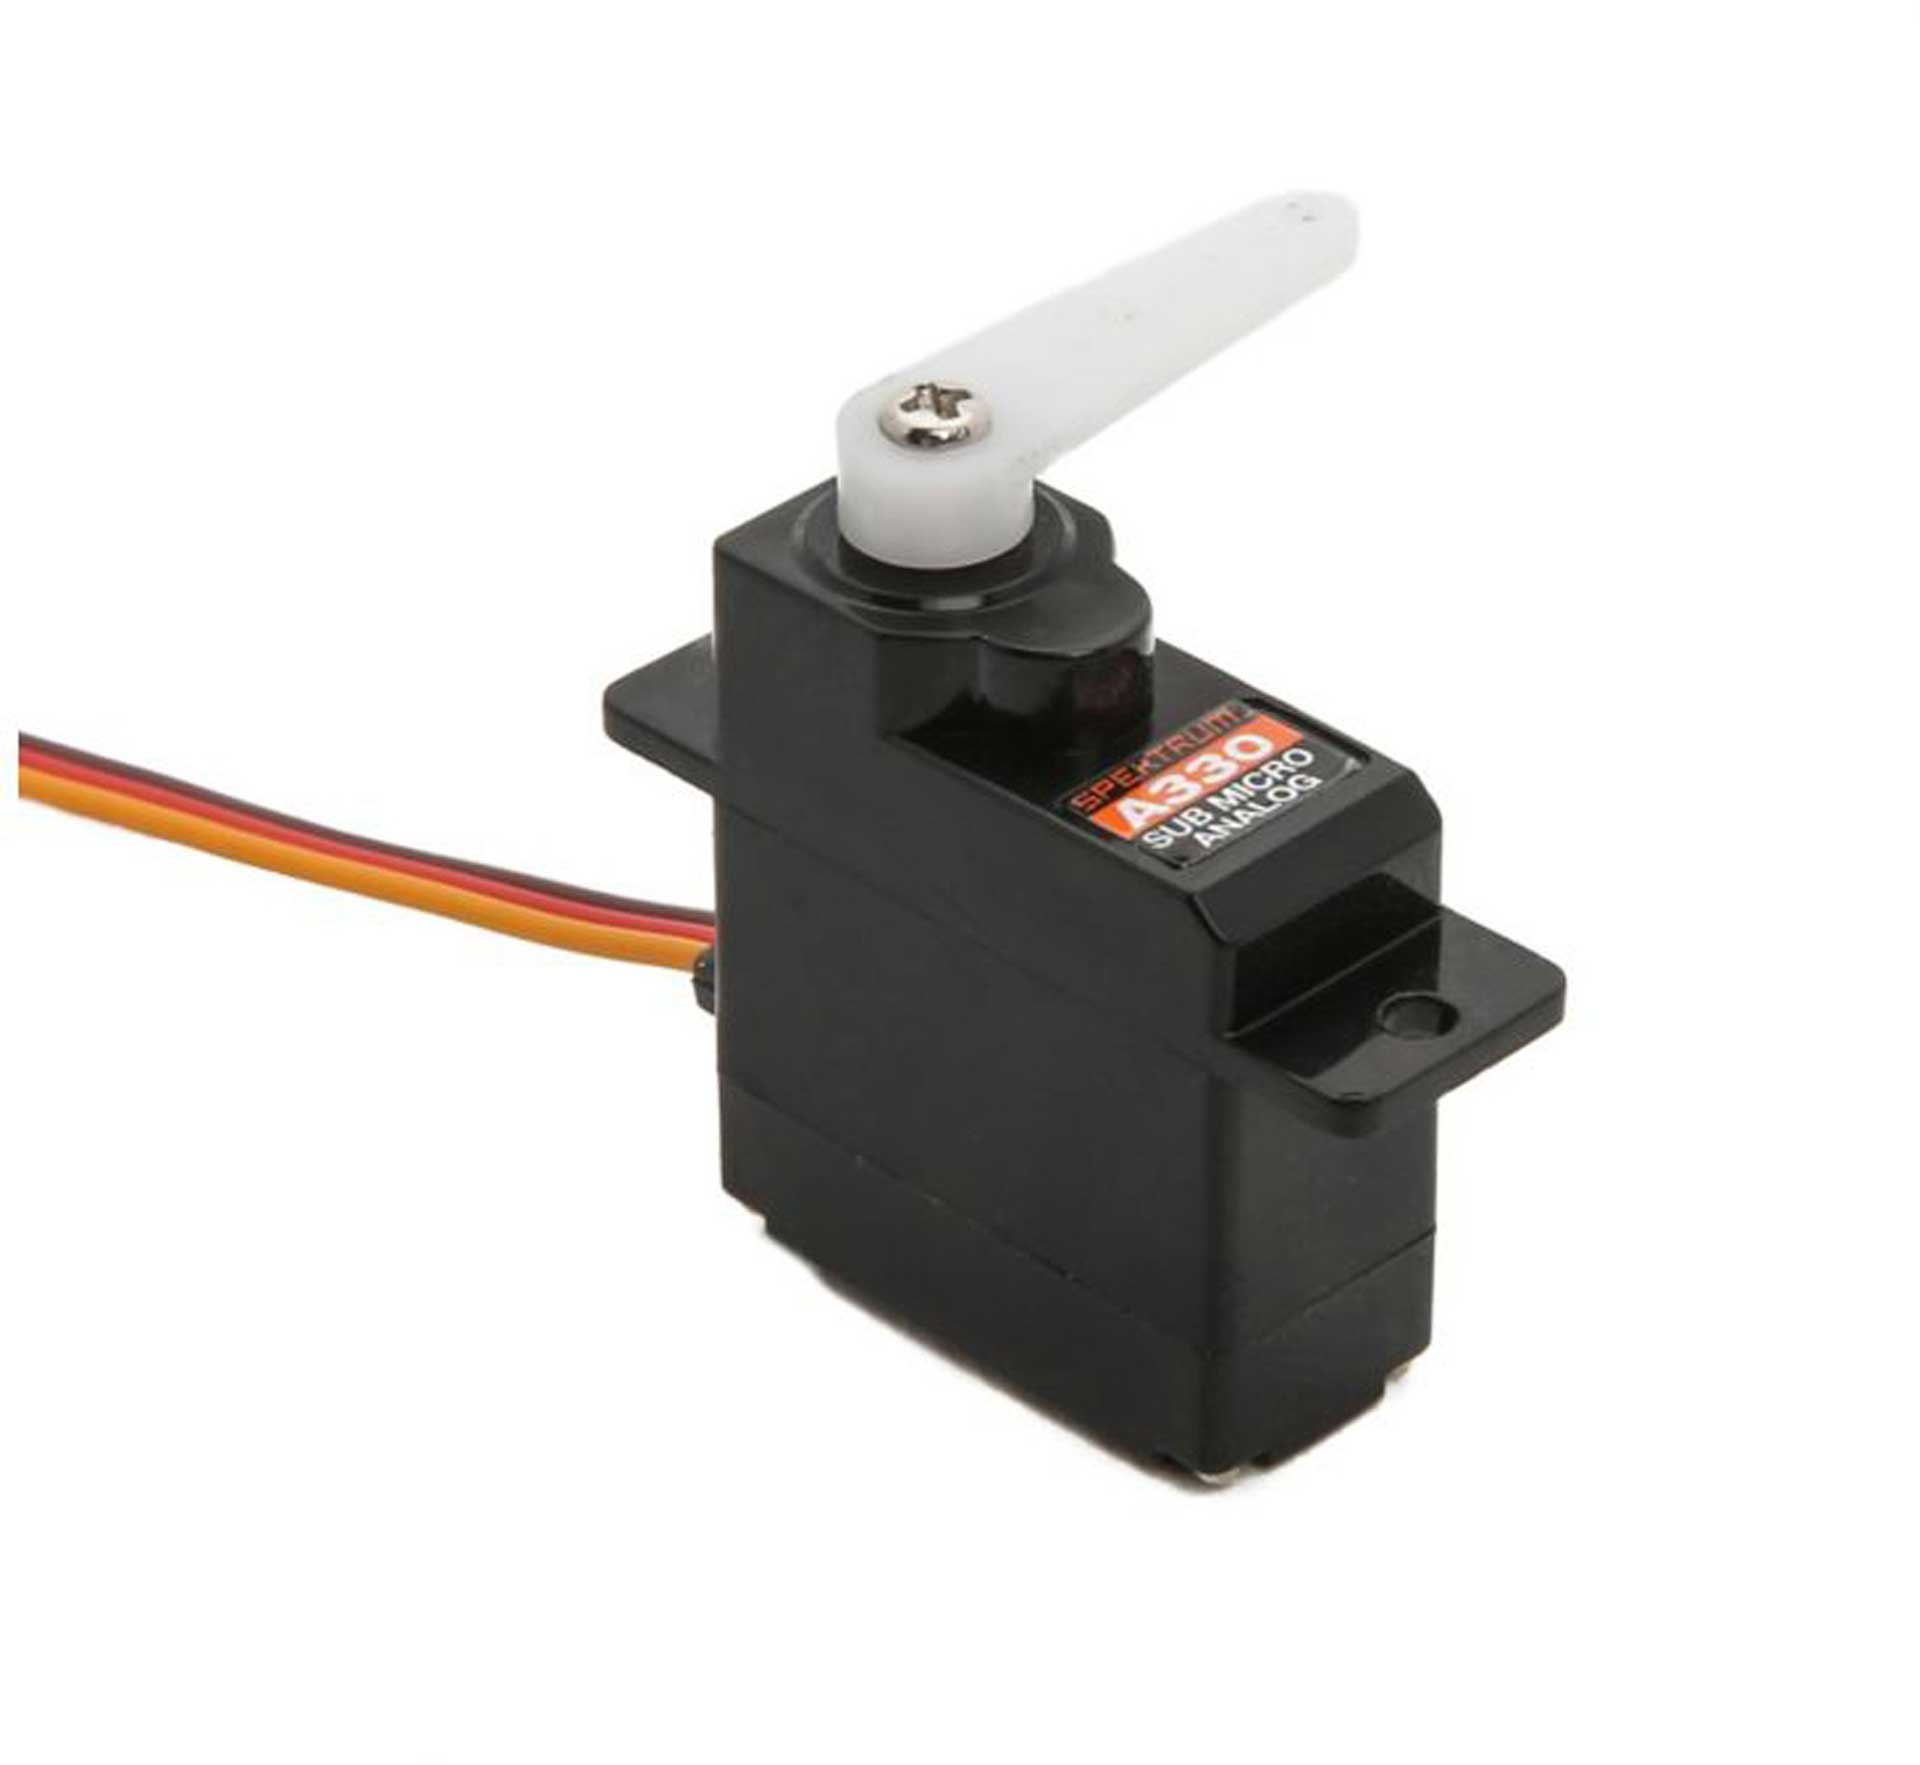 SPEKTRUM A330 Analog 9g Aircraft Servo